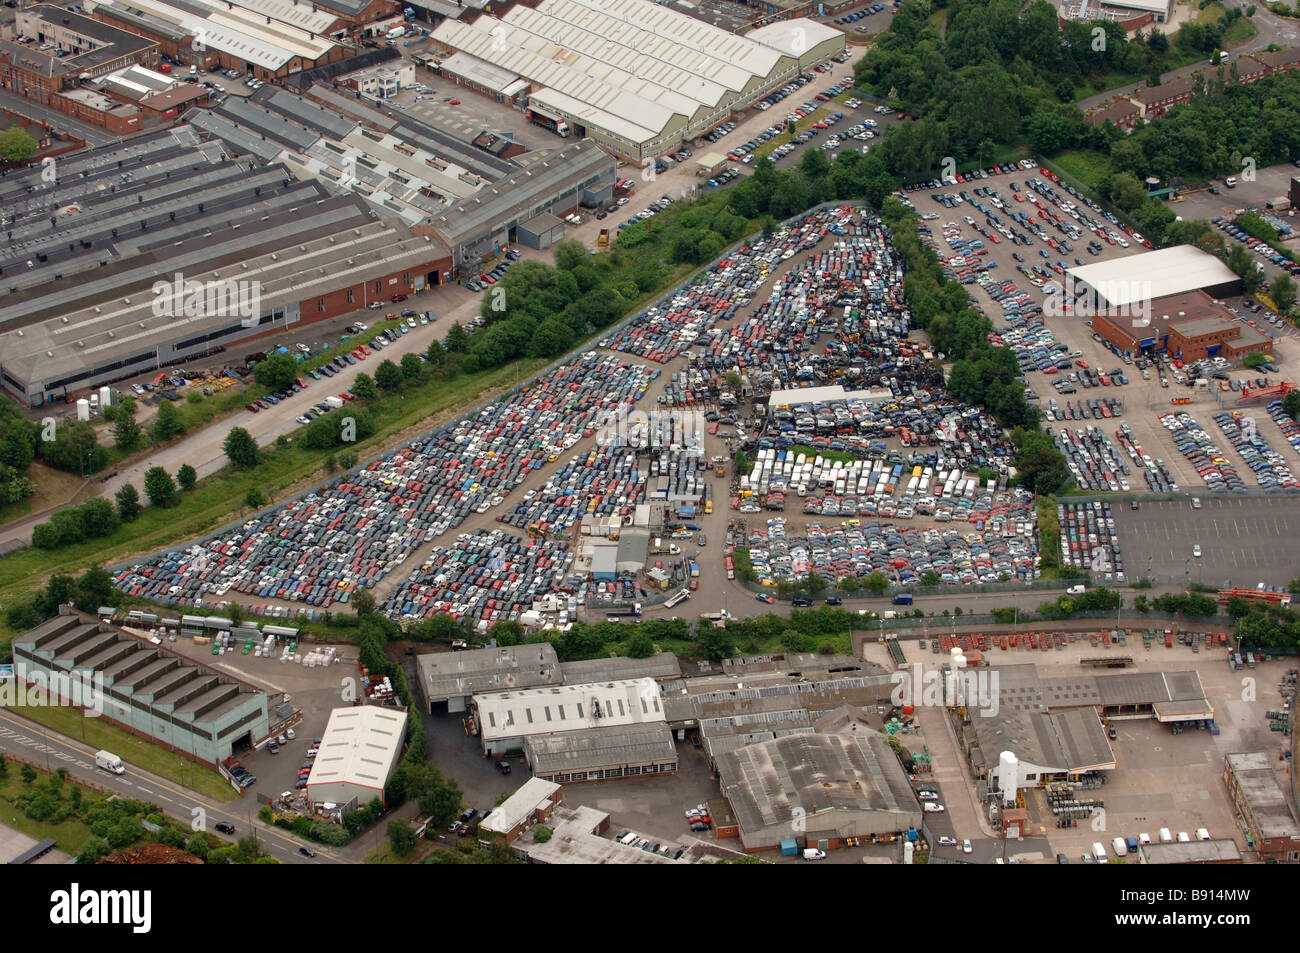 Auction Auto Usa >> Aerial view of the Manheim Car Auction site Darlaston Wednesbury West Stock Photo, Royalty Free ...